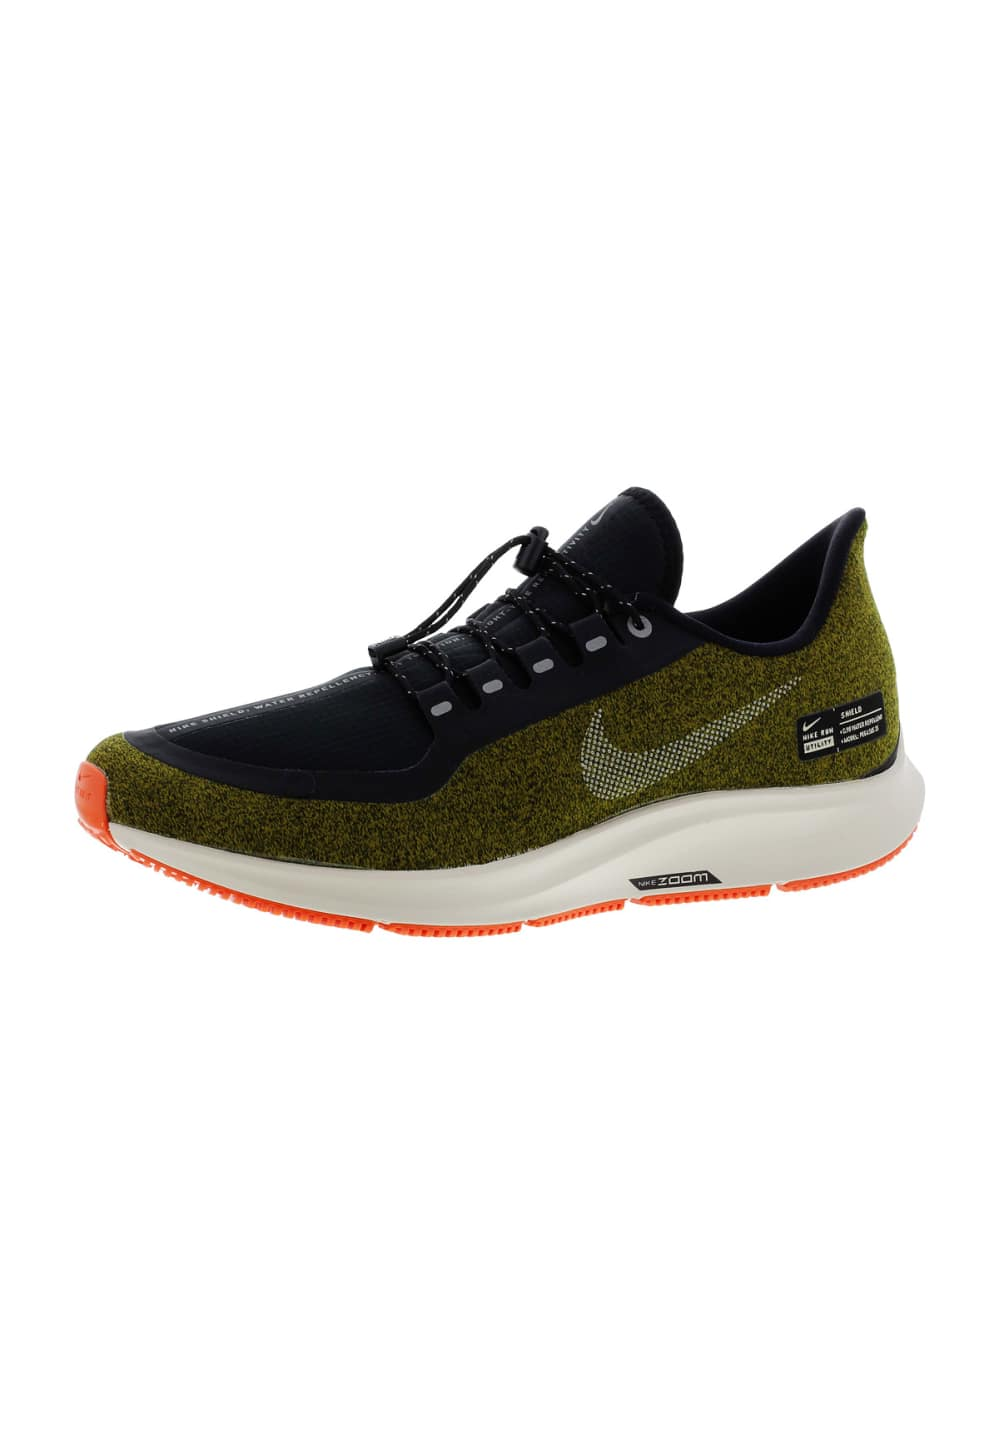 grossiste 56093 c8970 Nike Air Zoom Pegasus 35 Shield - Chaussures running pour Homme - Jaune